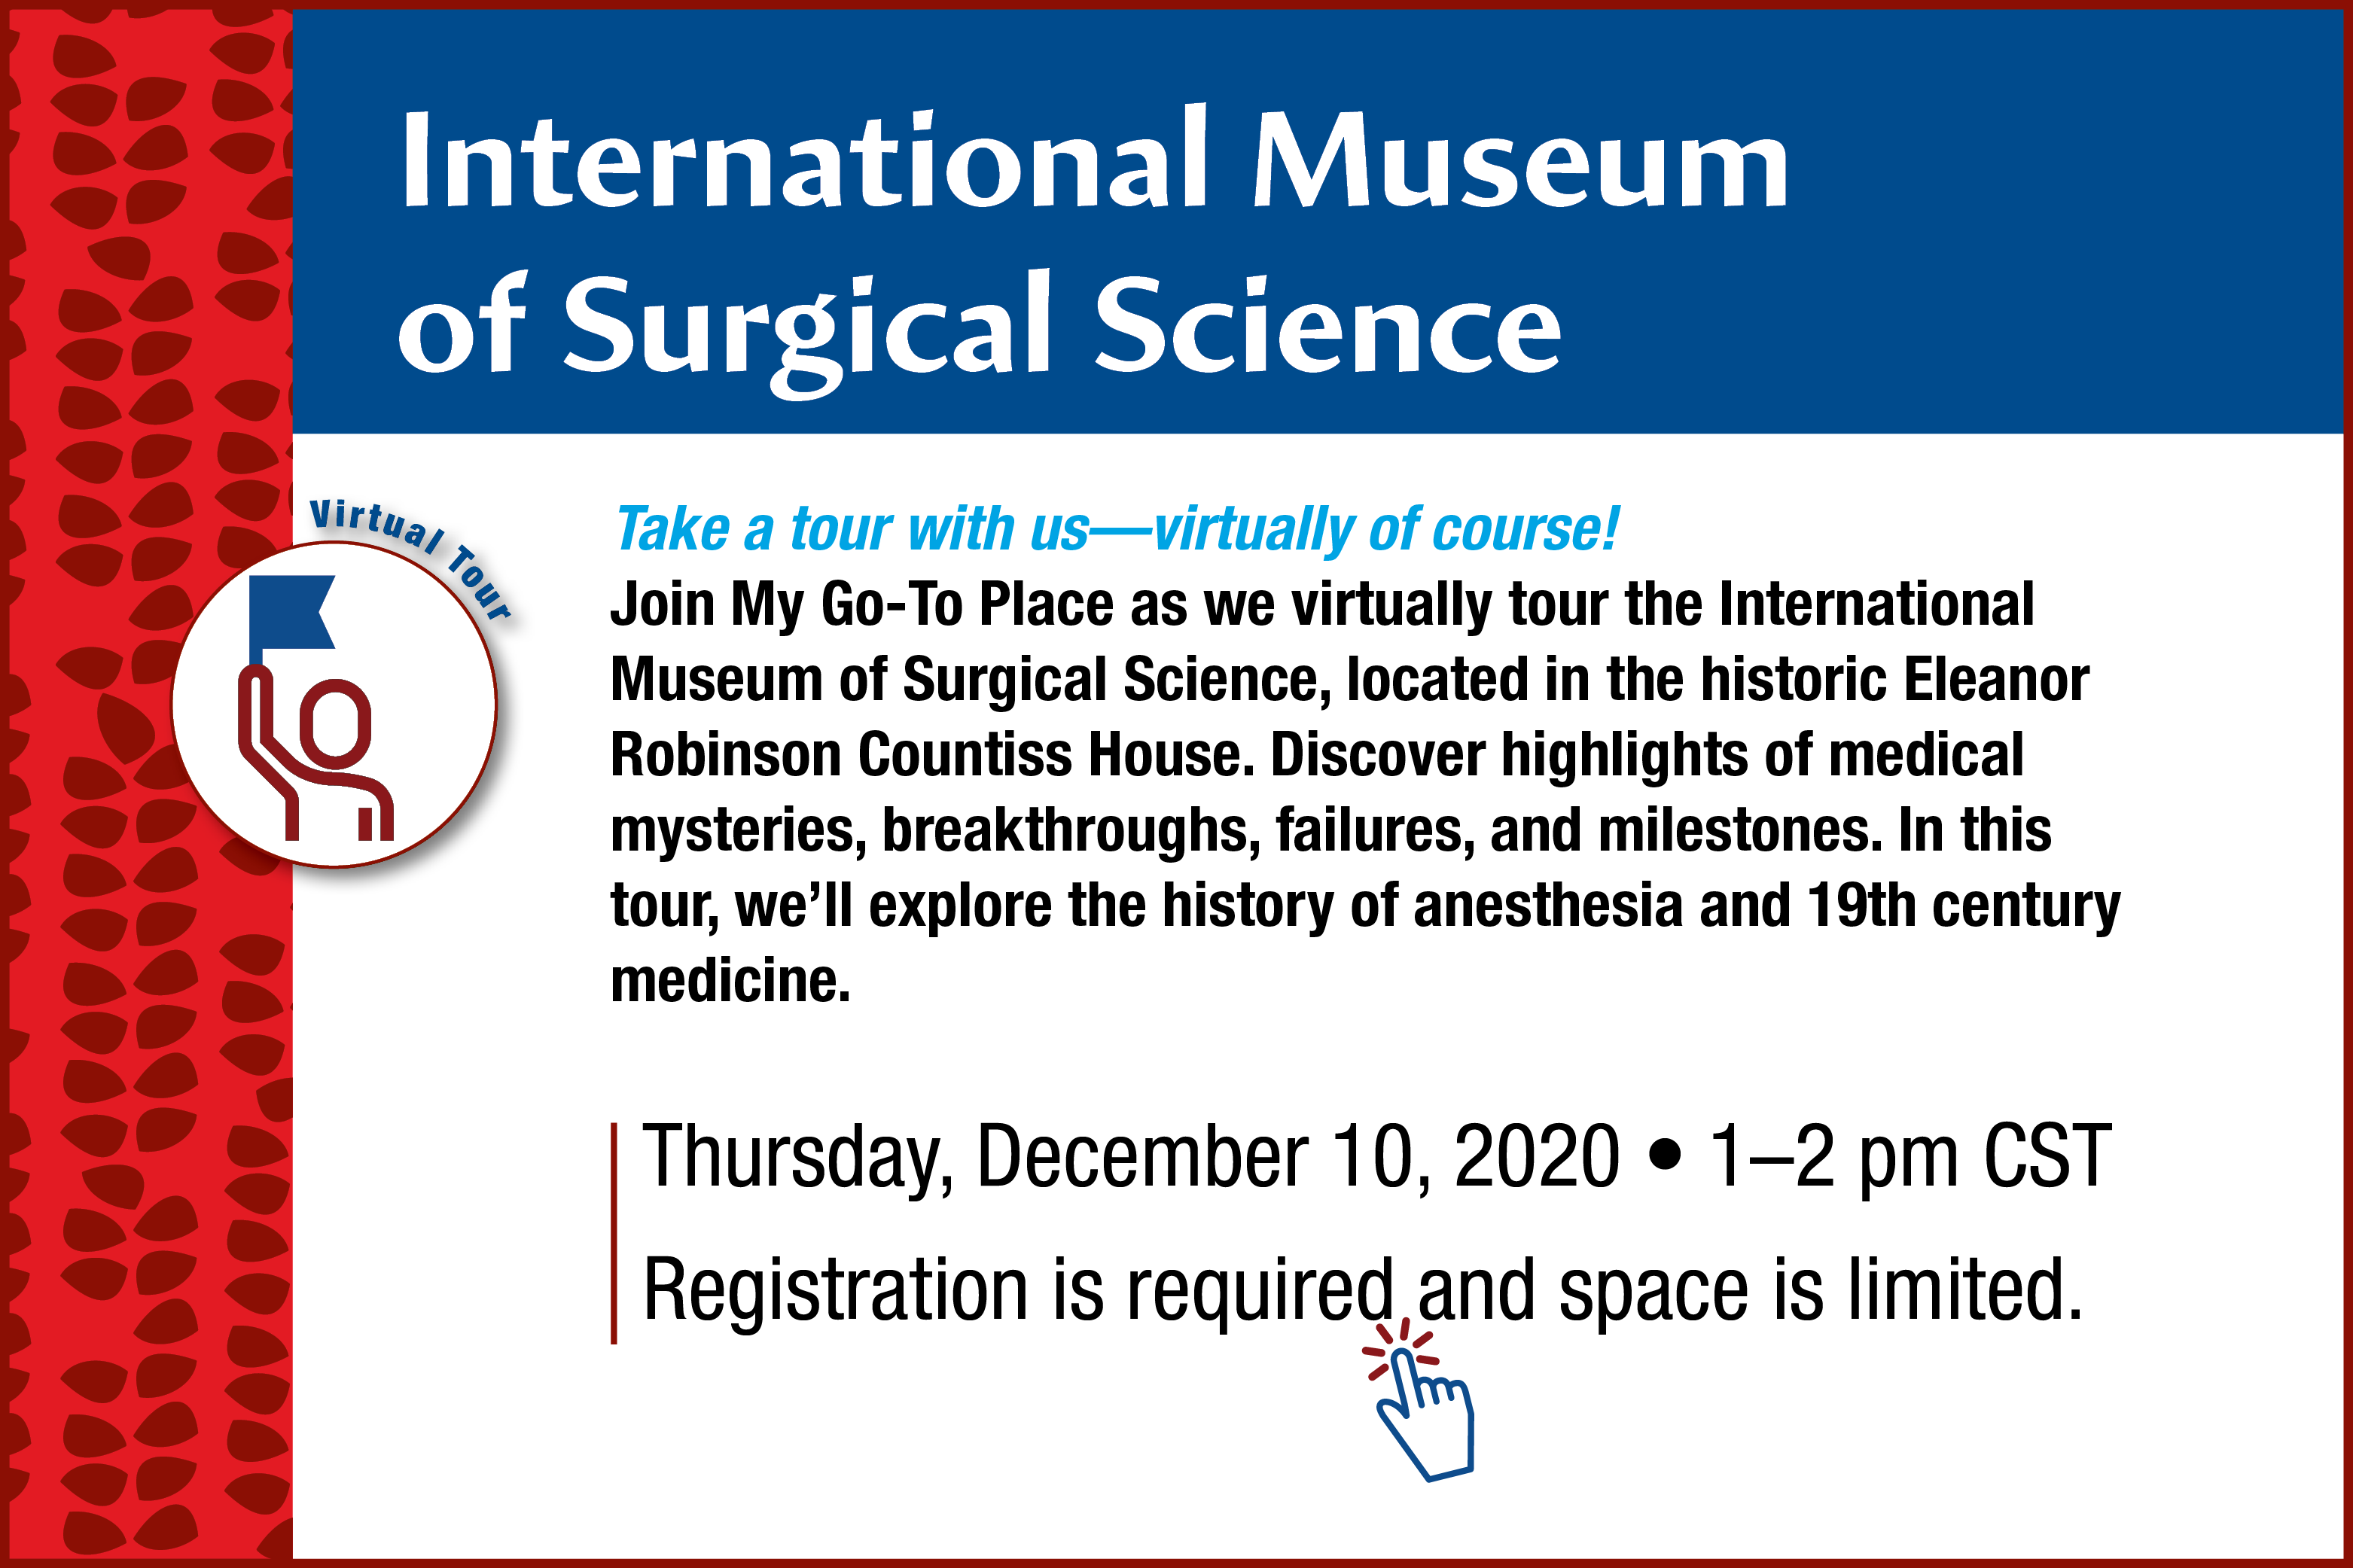 MGTP-International Museum of Surgical Science Virtual Field Trip